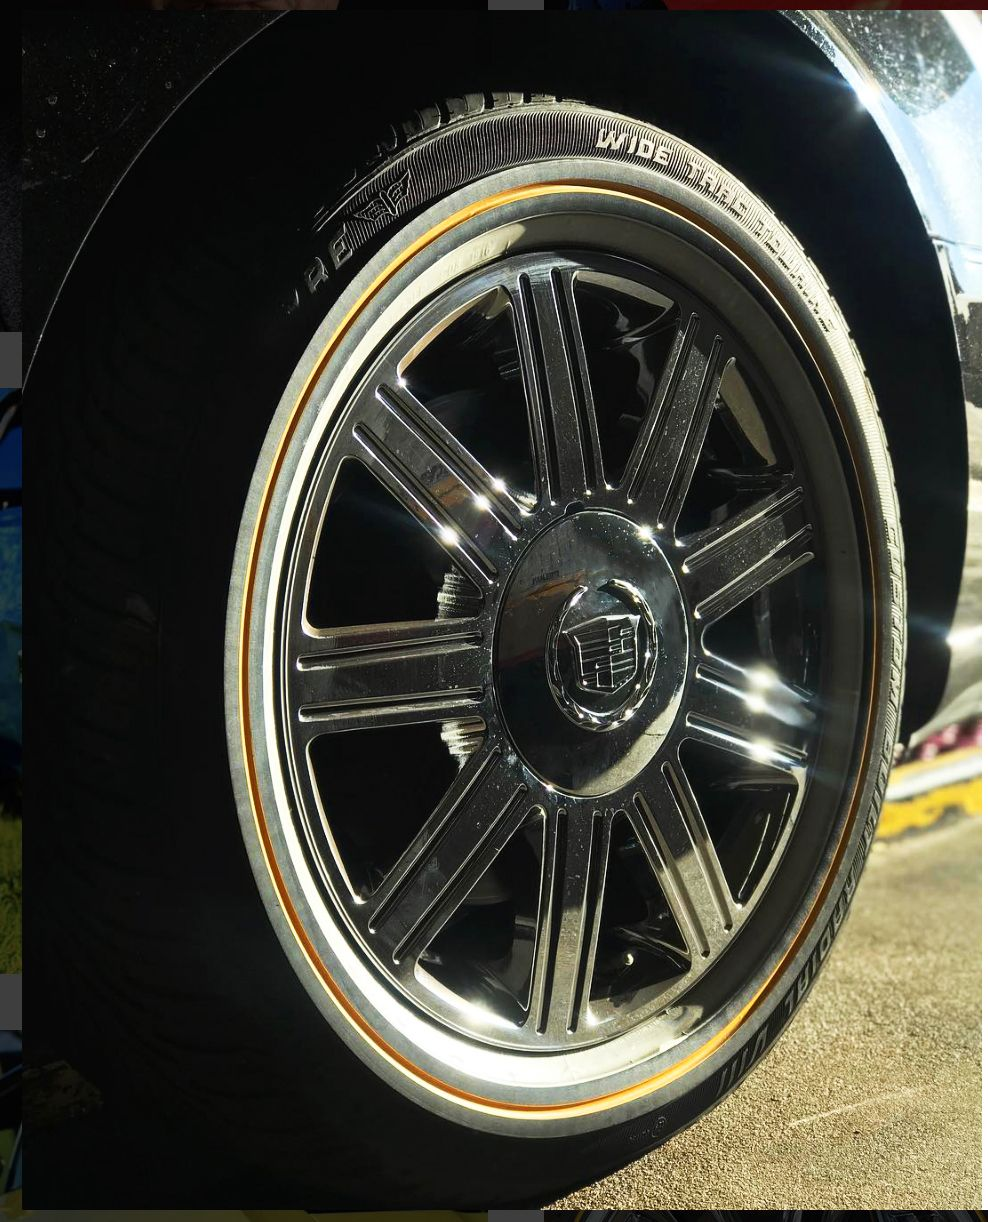 Vogue Wide Trac Touring Tire With Classics Style Rims Tire Car Ride